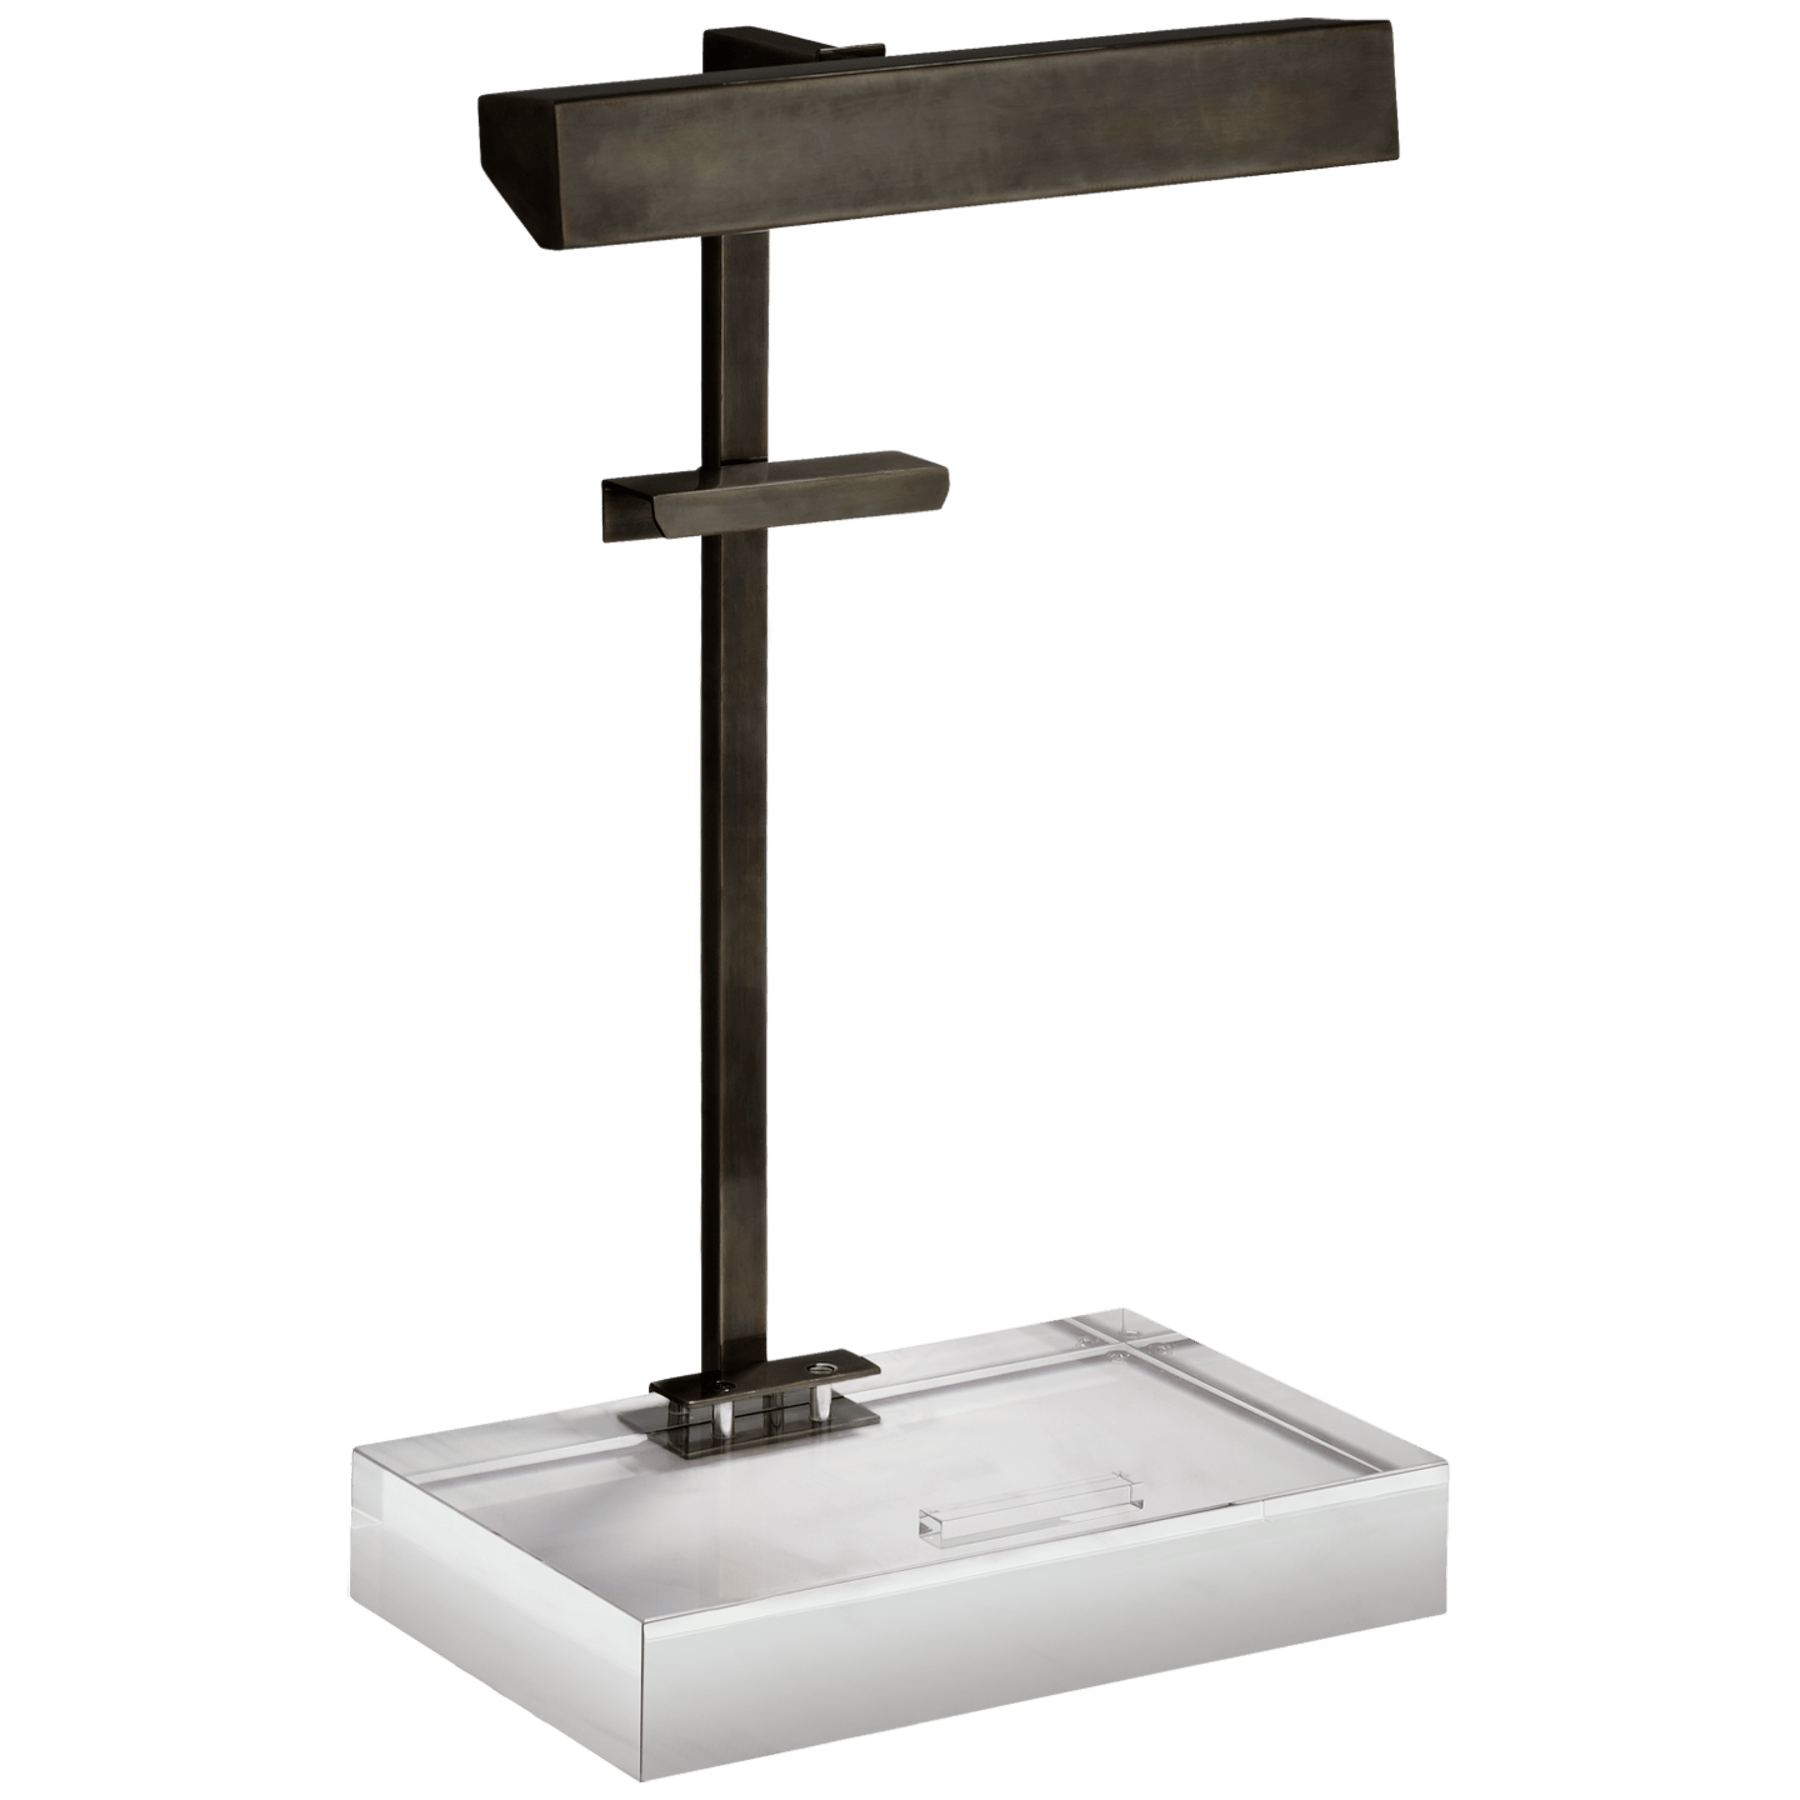 McClean Easel Light